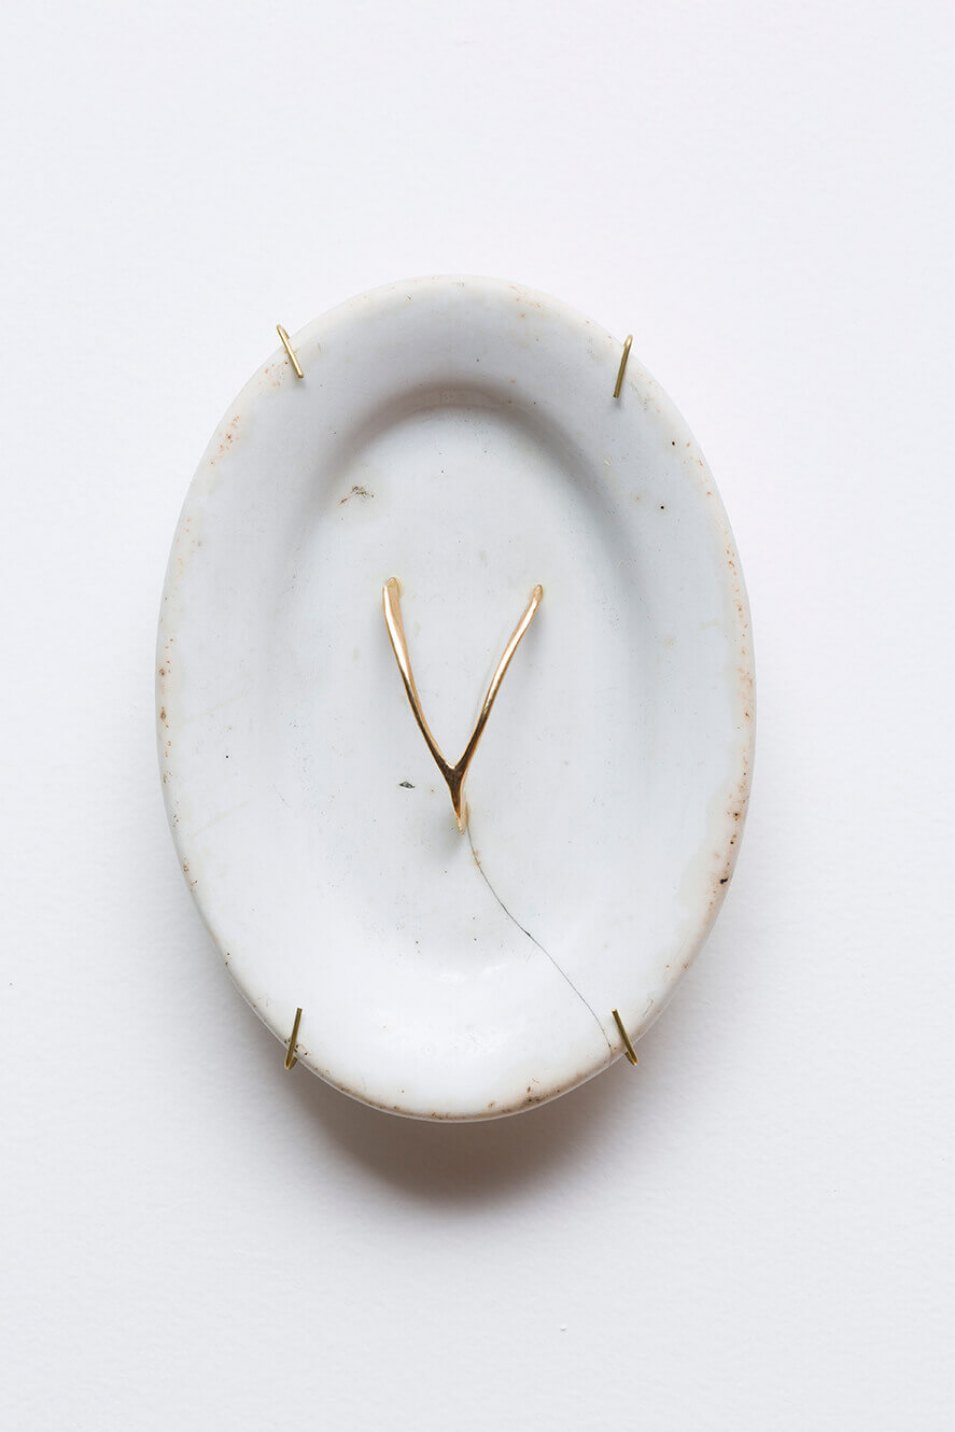 Antônio Obá, <em>Fortuna</em>, 2015, porcelain plate and gold object, 18 × 13 × 2,5 cm - Mendes Wood DM